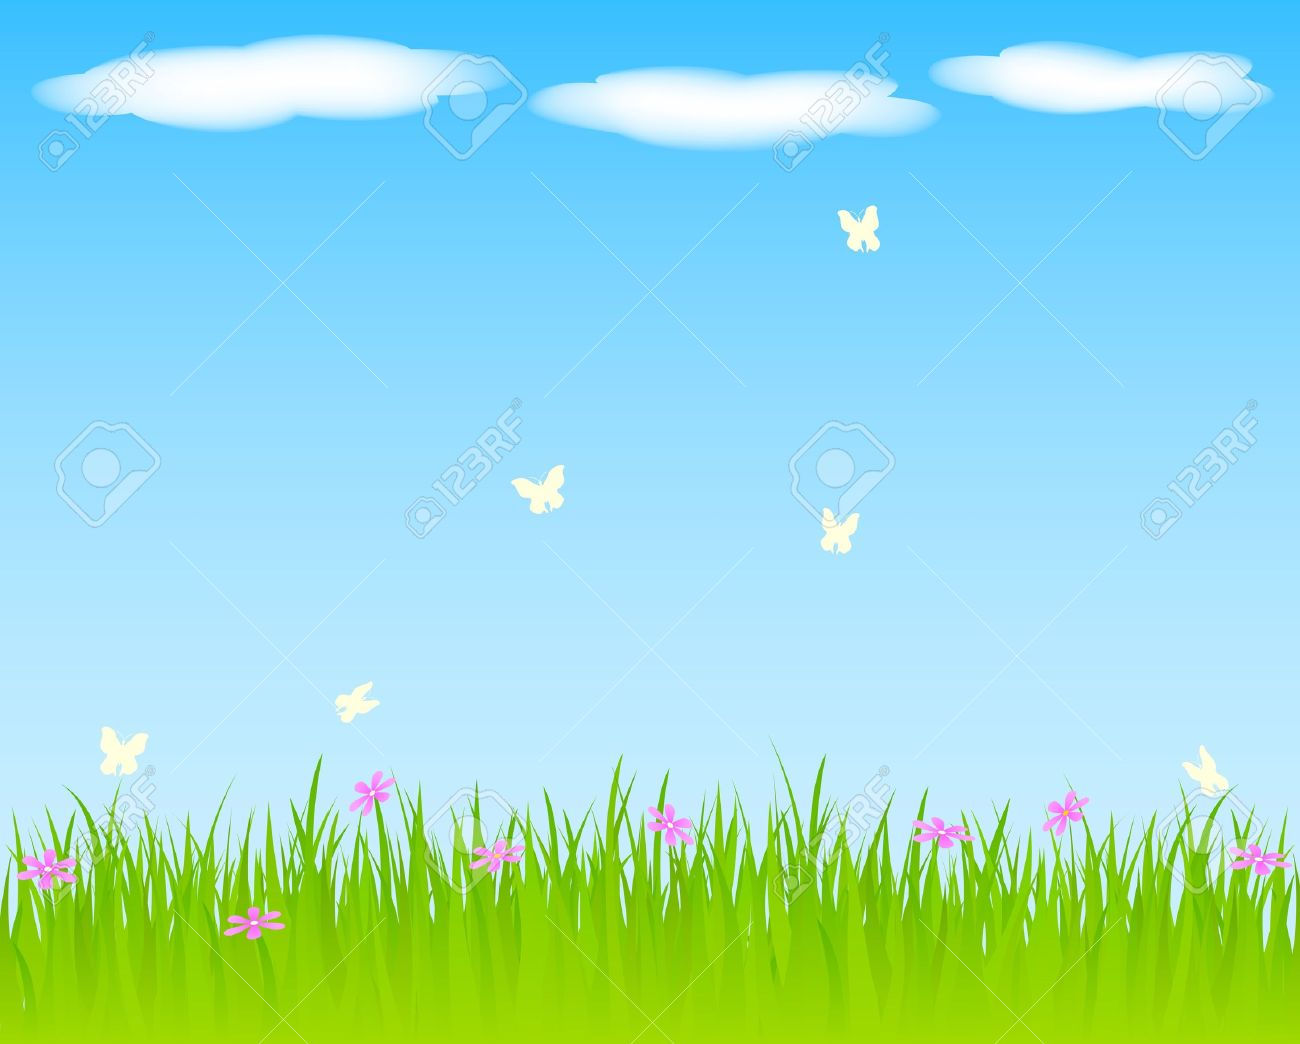 Sky and grass background clipart 2 » Clipart Station.